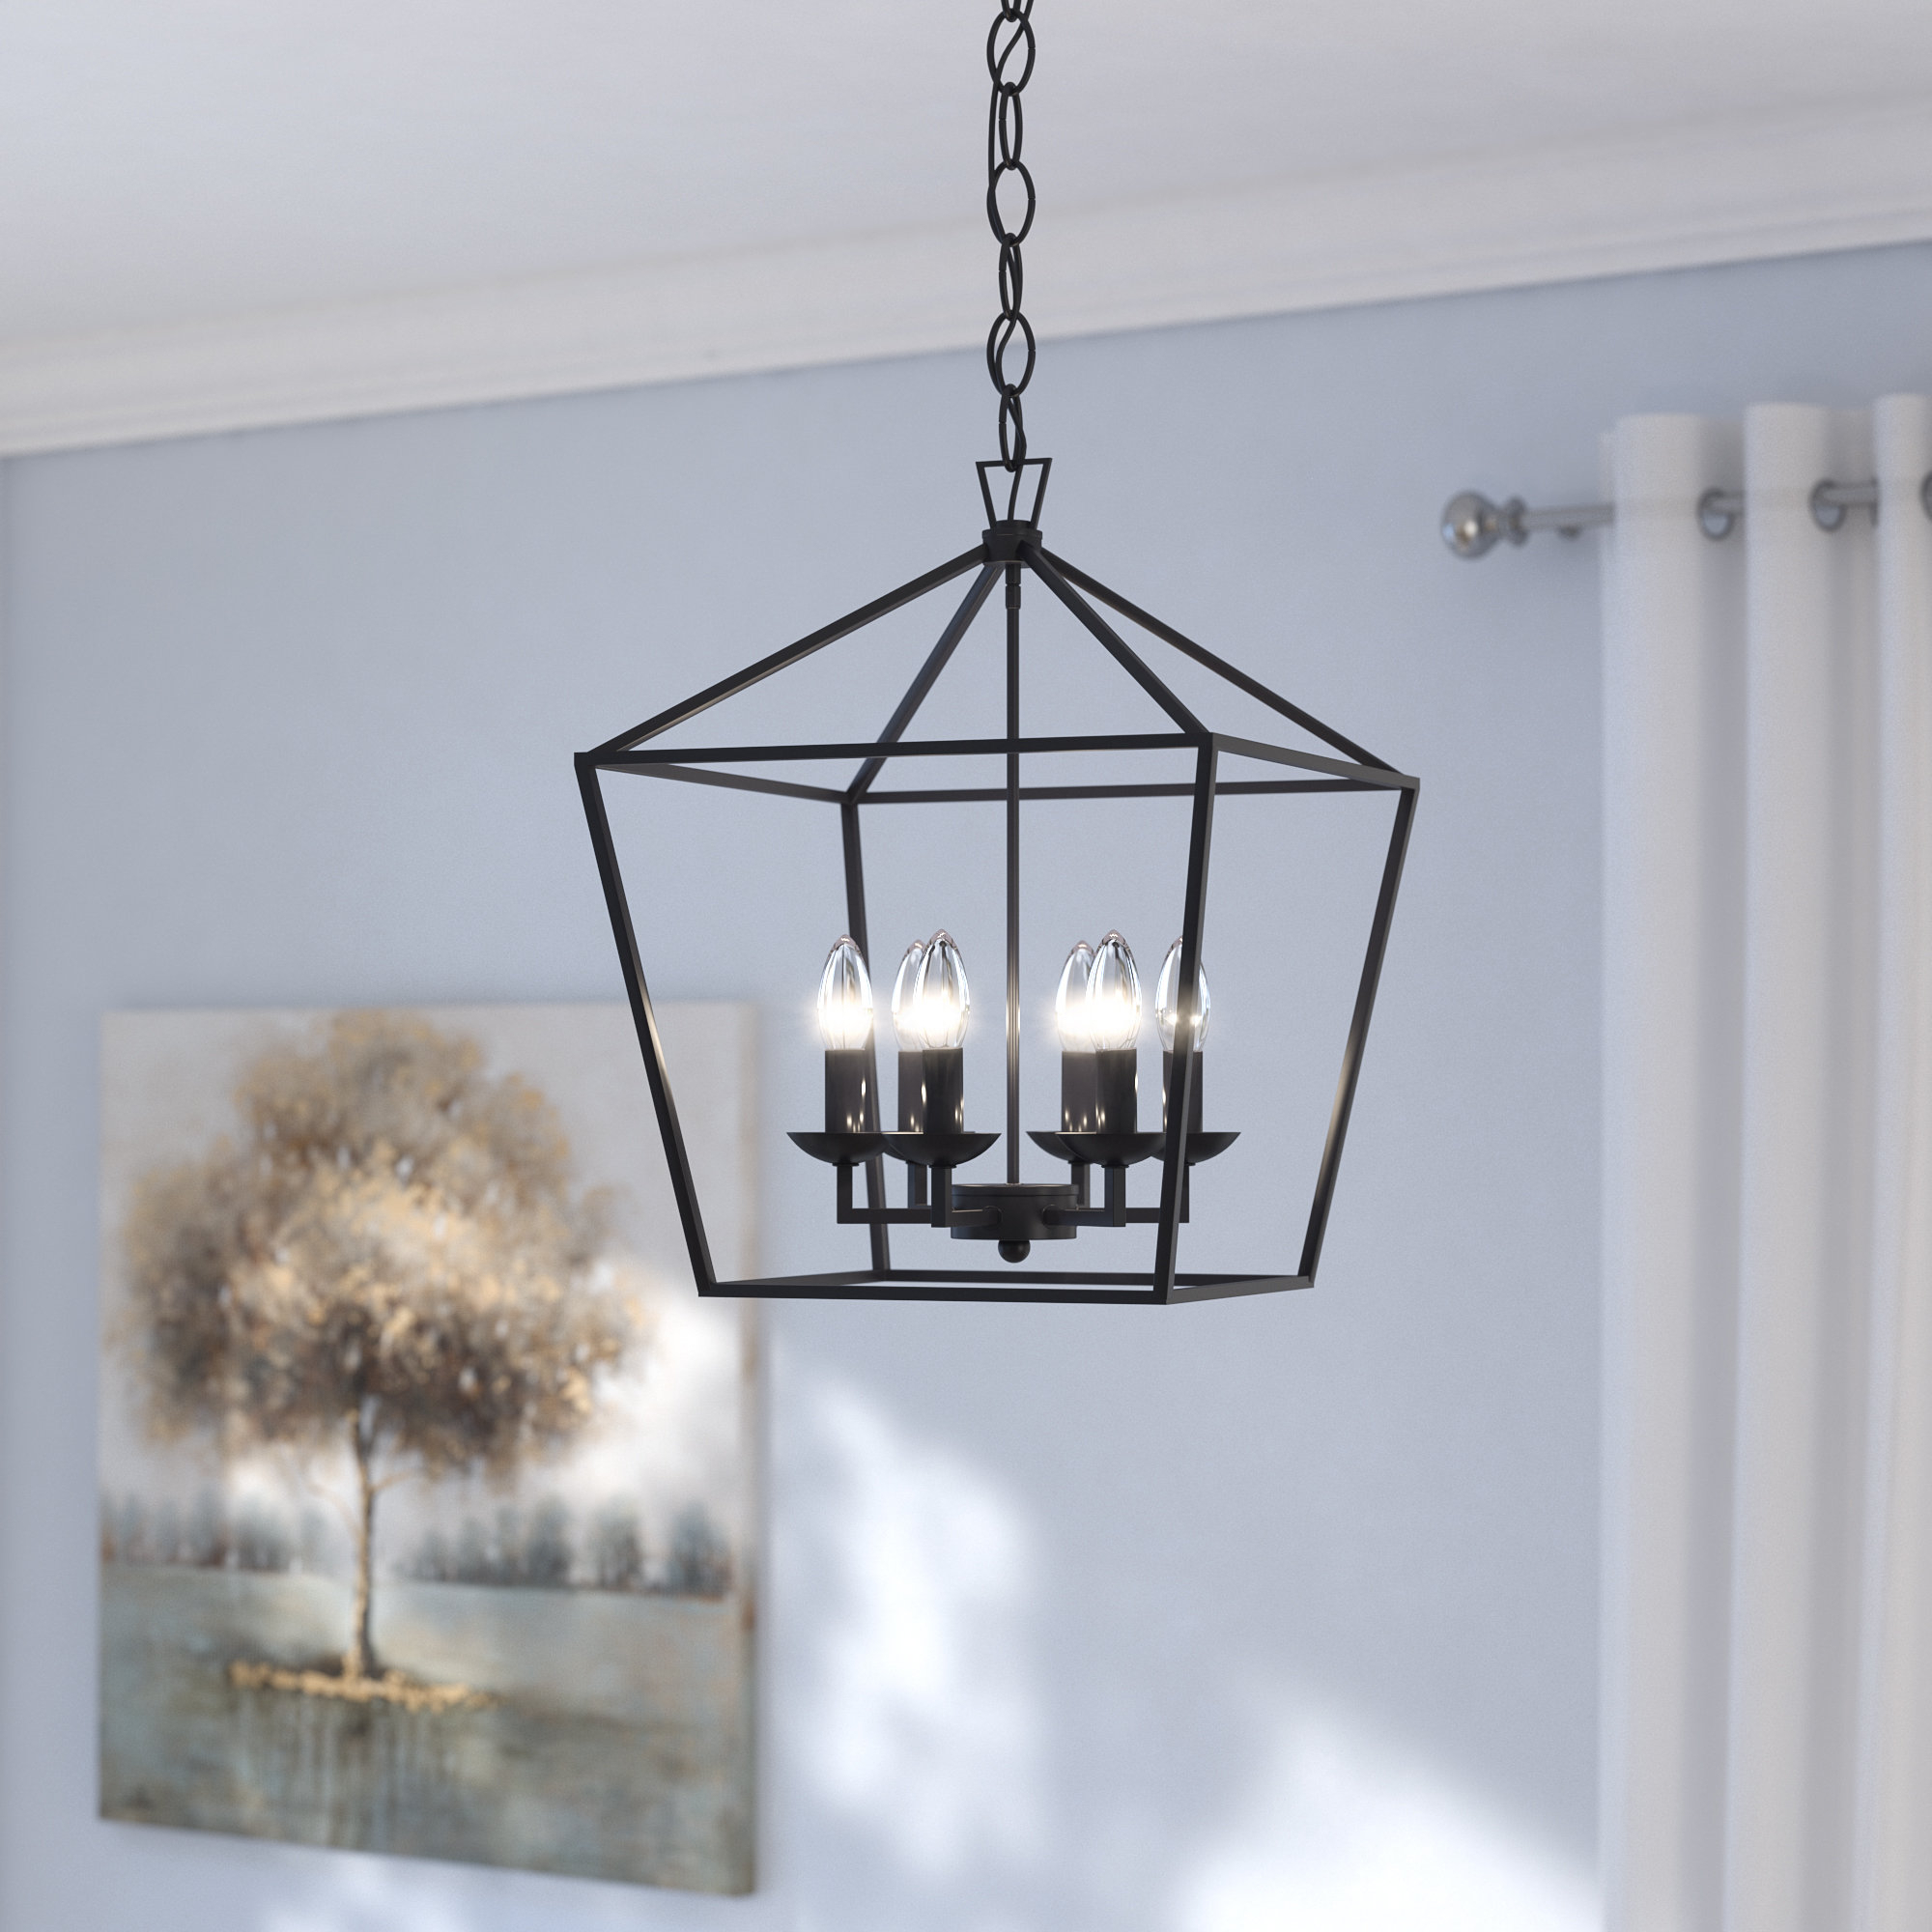 Most Recent Carmen 6 Light Lantern Geometric Pendants Pertaining To Carmen 6 Light Lantern Geometric Pendant (View 3 of 20)